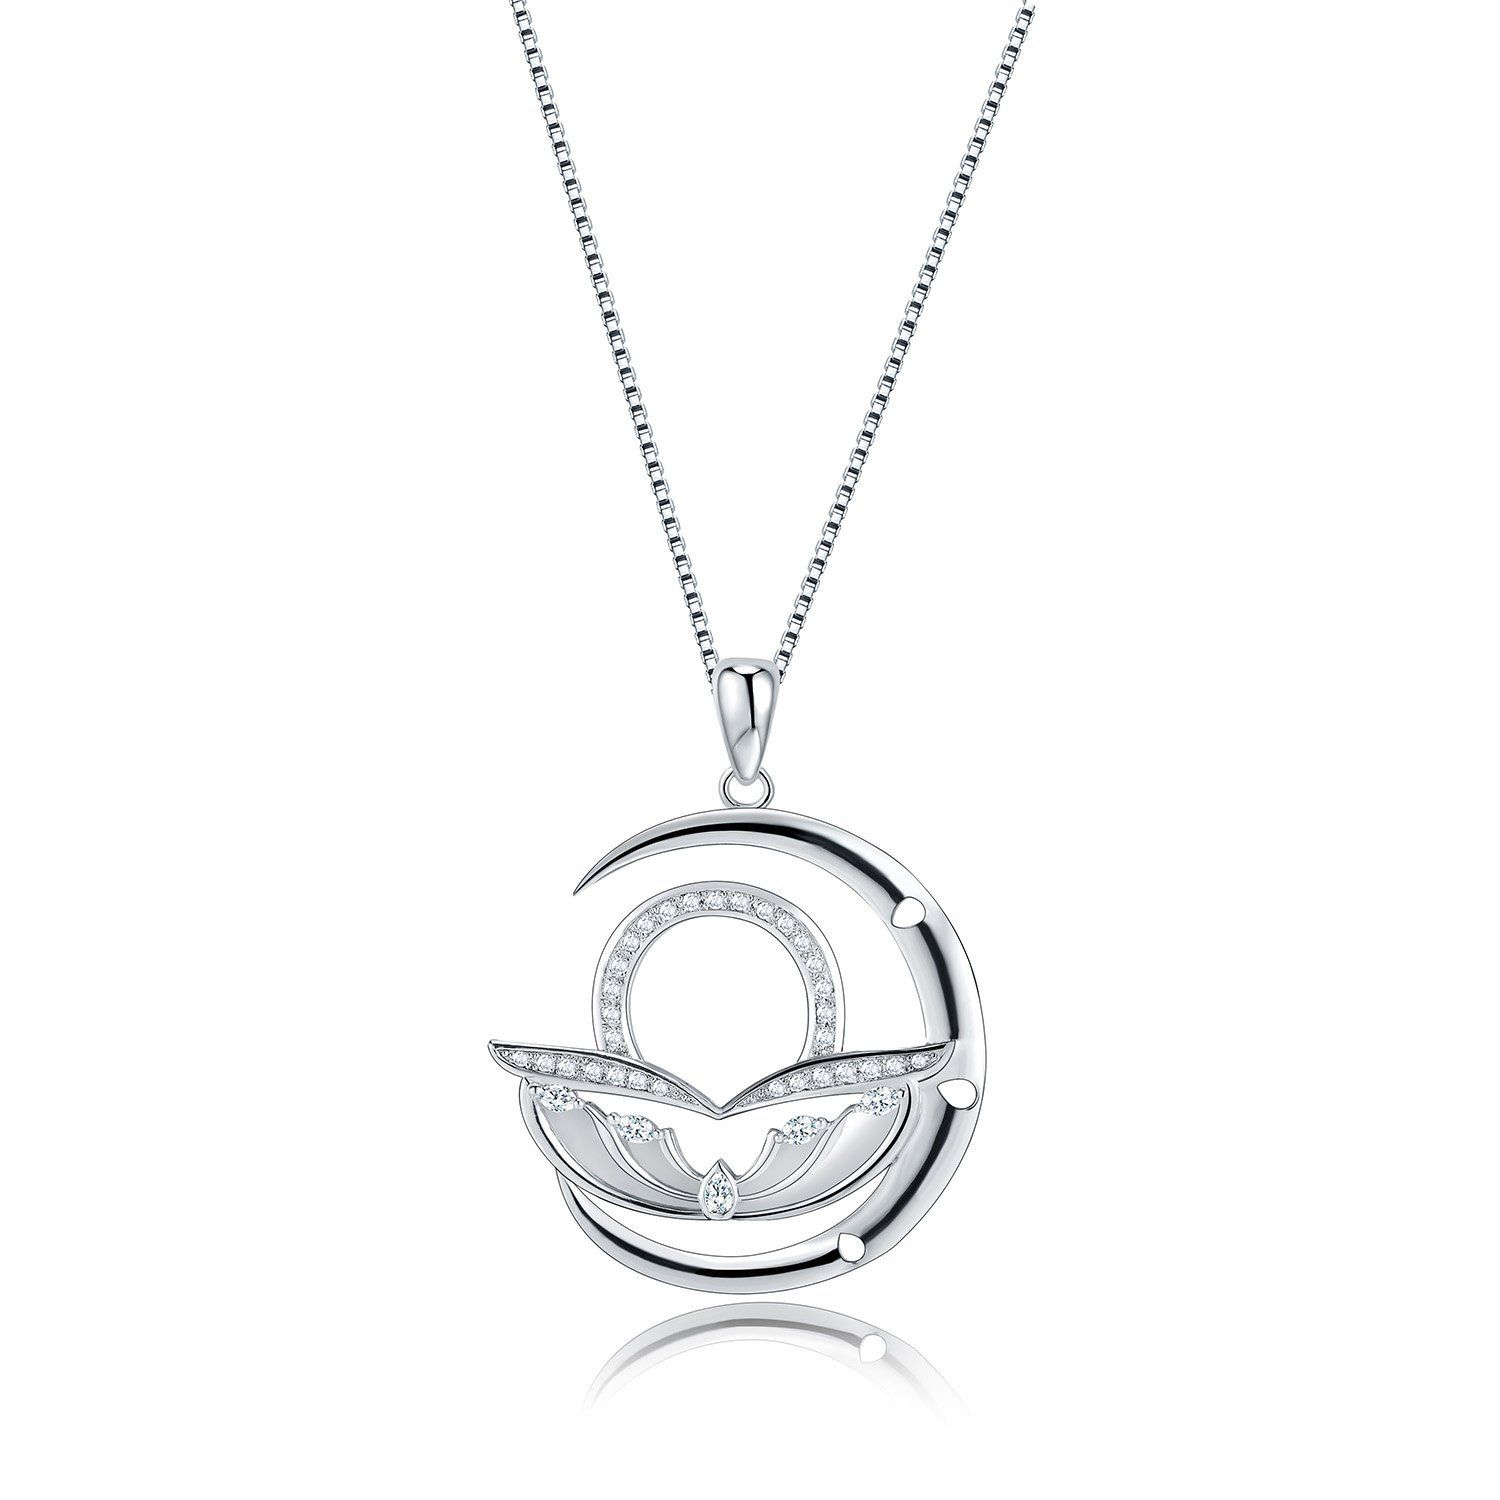 Moon horoscope signs of zodiac pendant necklace with cubic zirconia